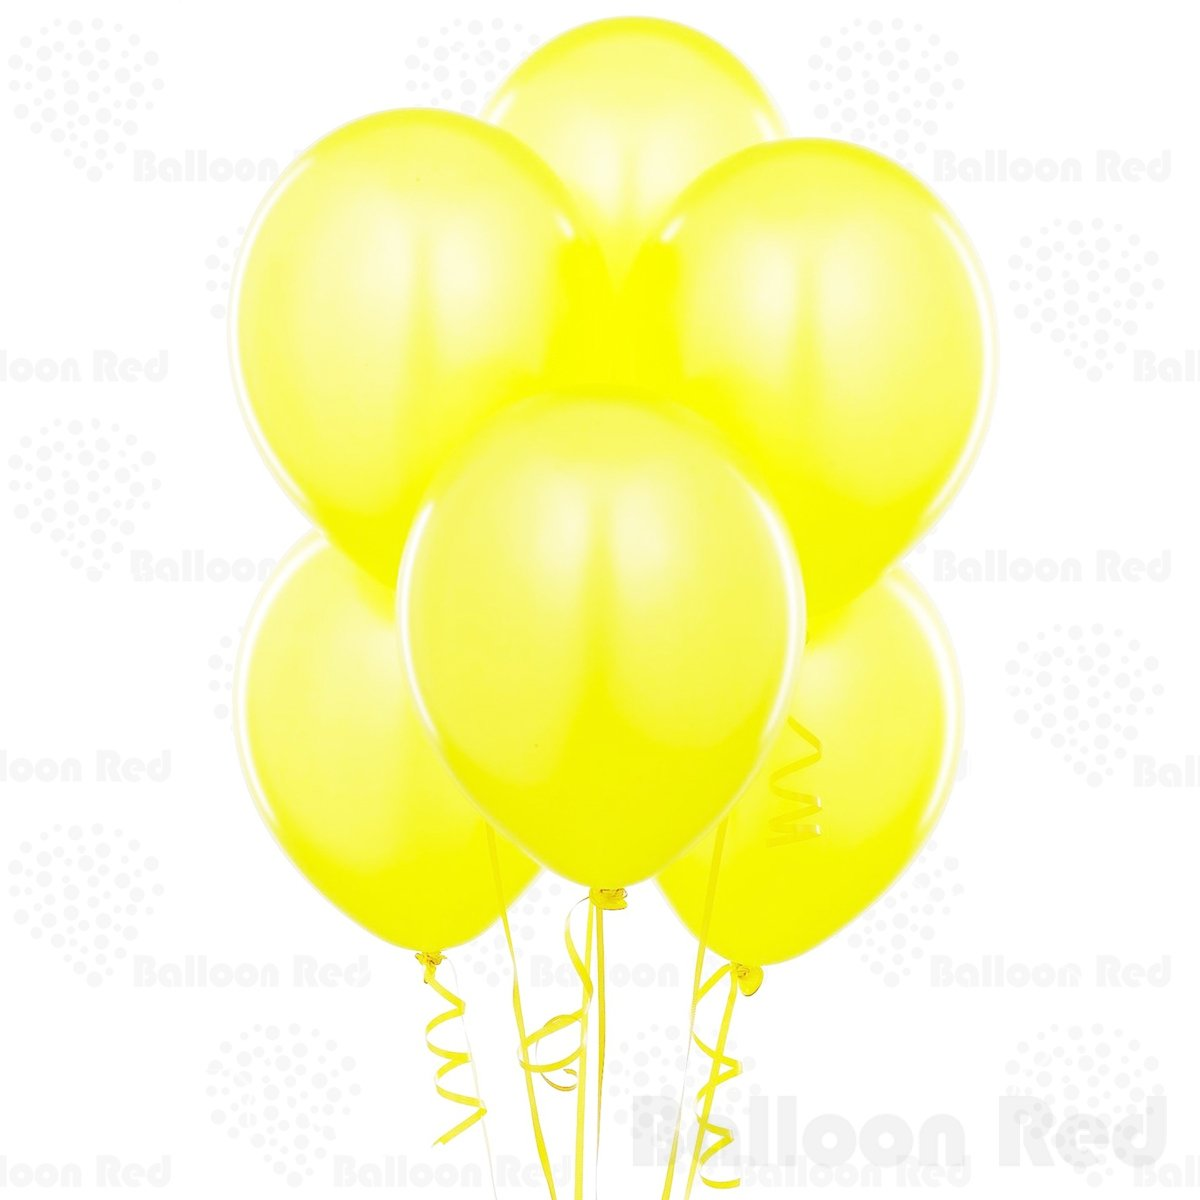 Premium Helium Quality 10 Inch Latex Balloons Teal Balloon Red 10lat-24-tl Pack of 24